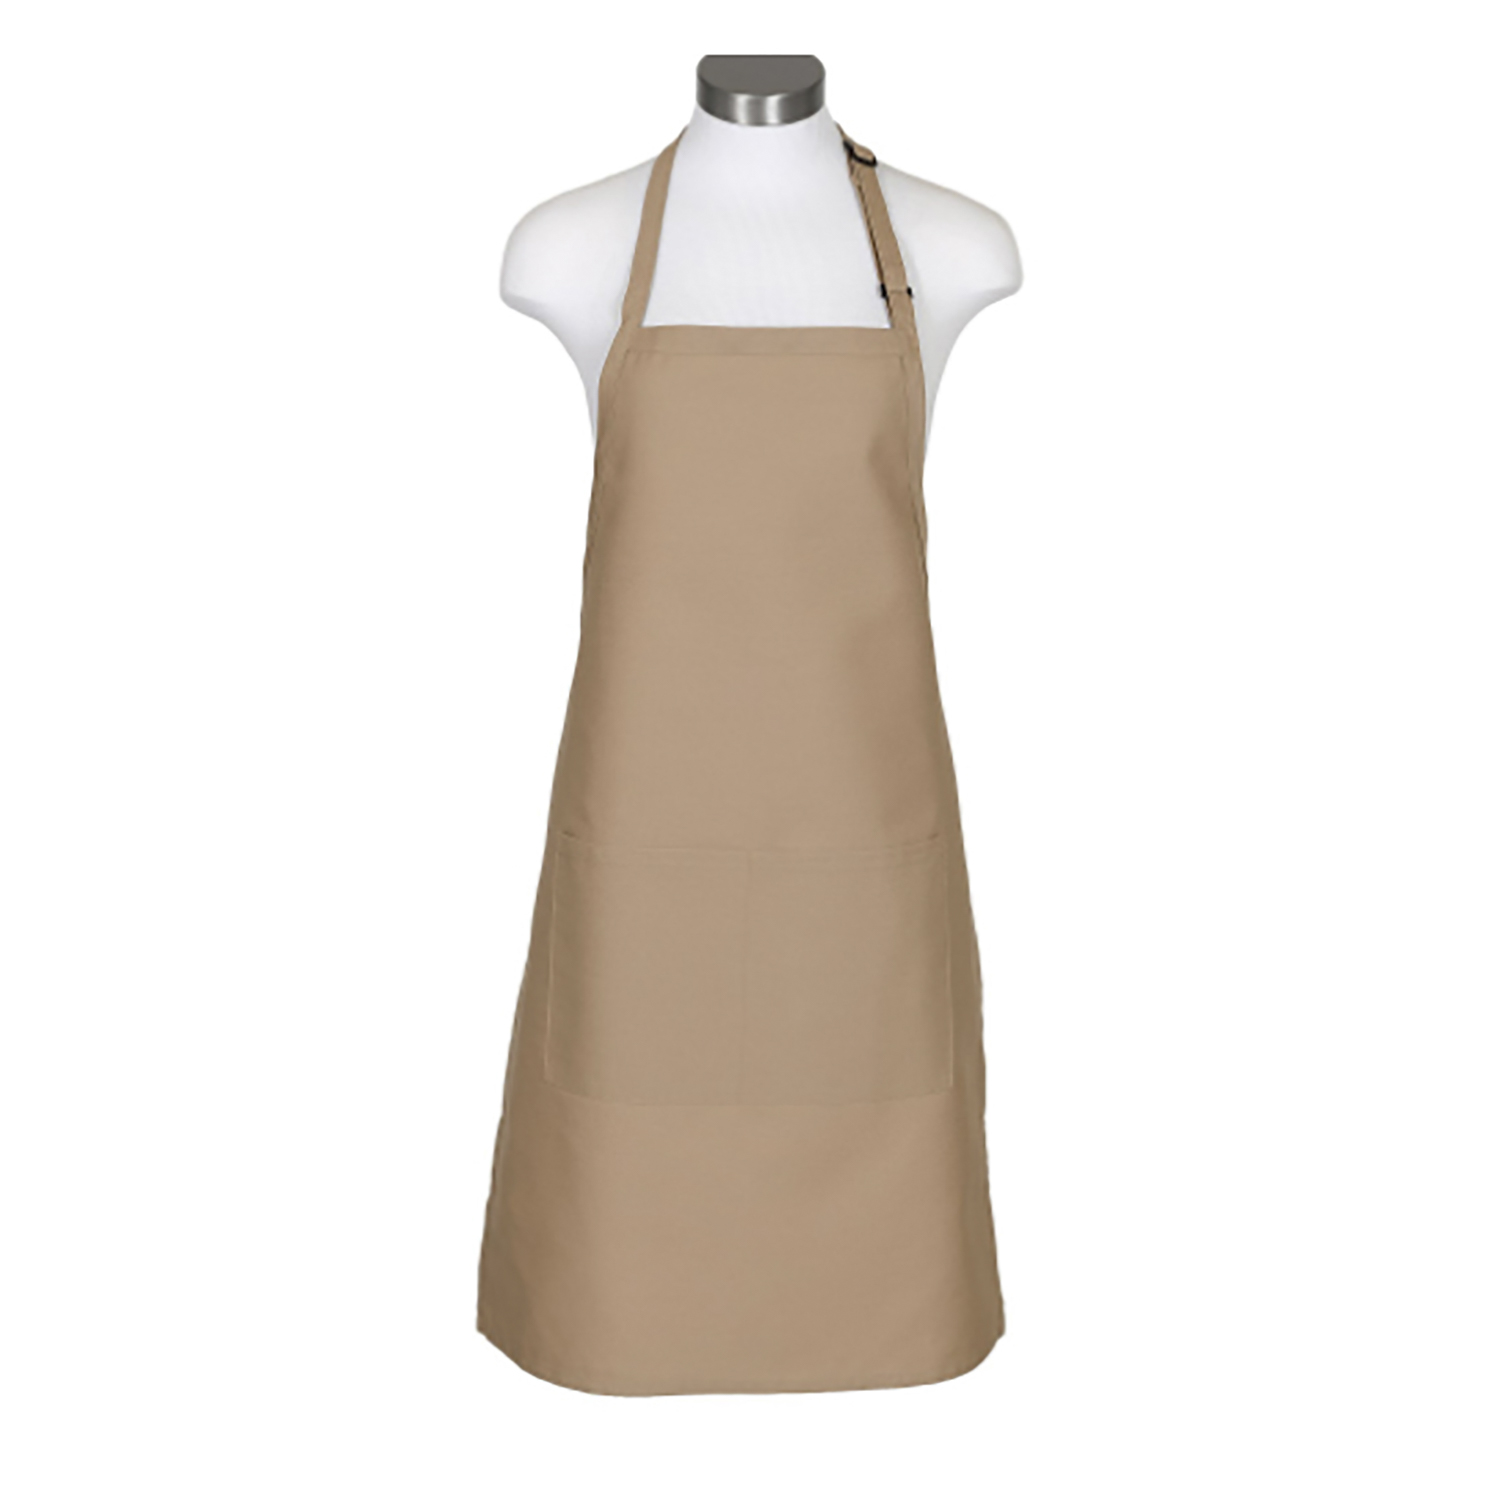 ERB Two Pocket Butcher Apron W/ Adjustable Neck